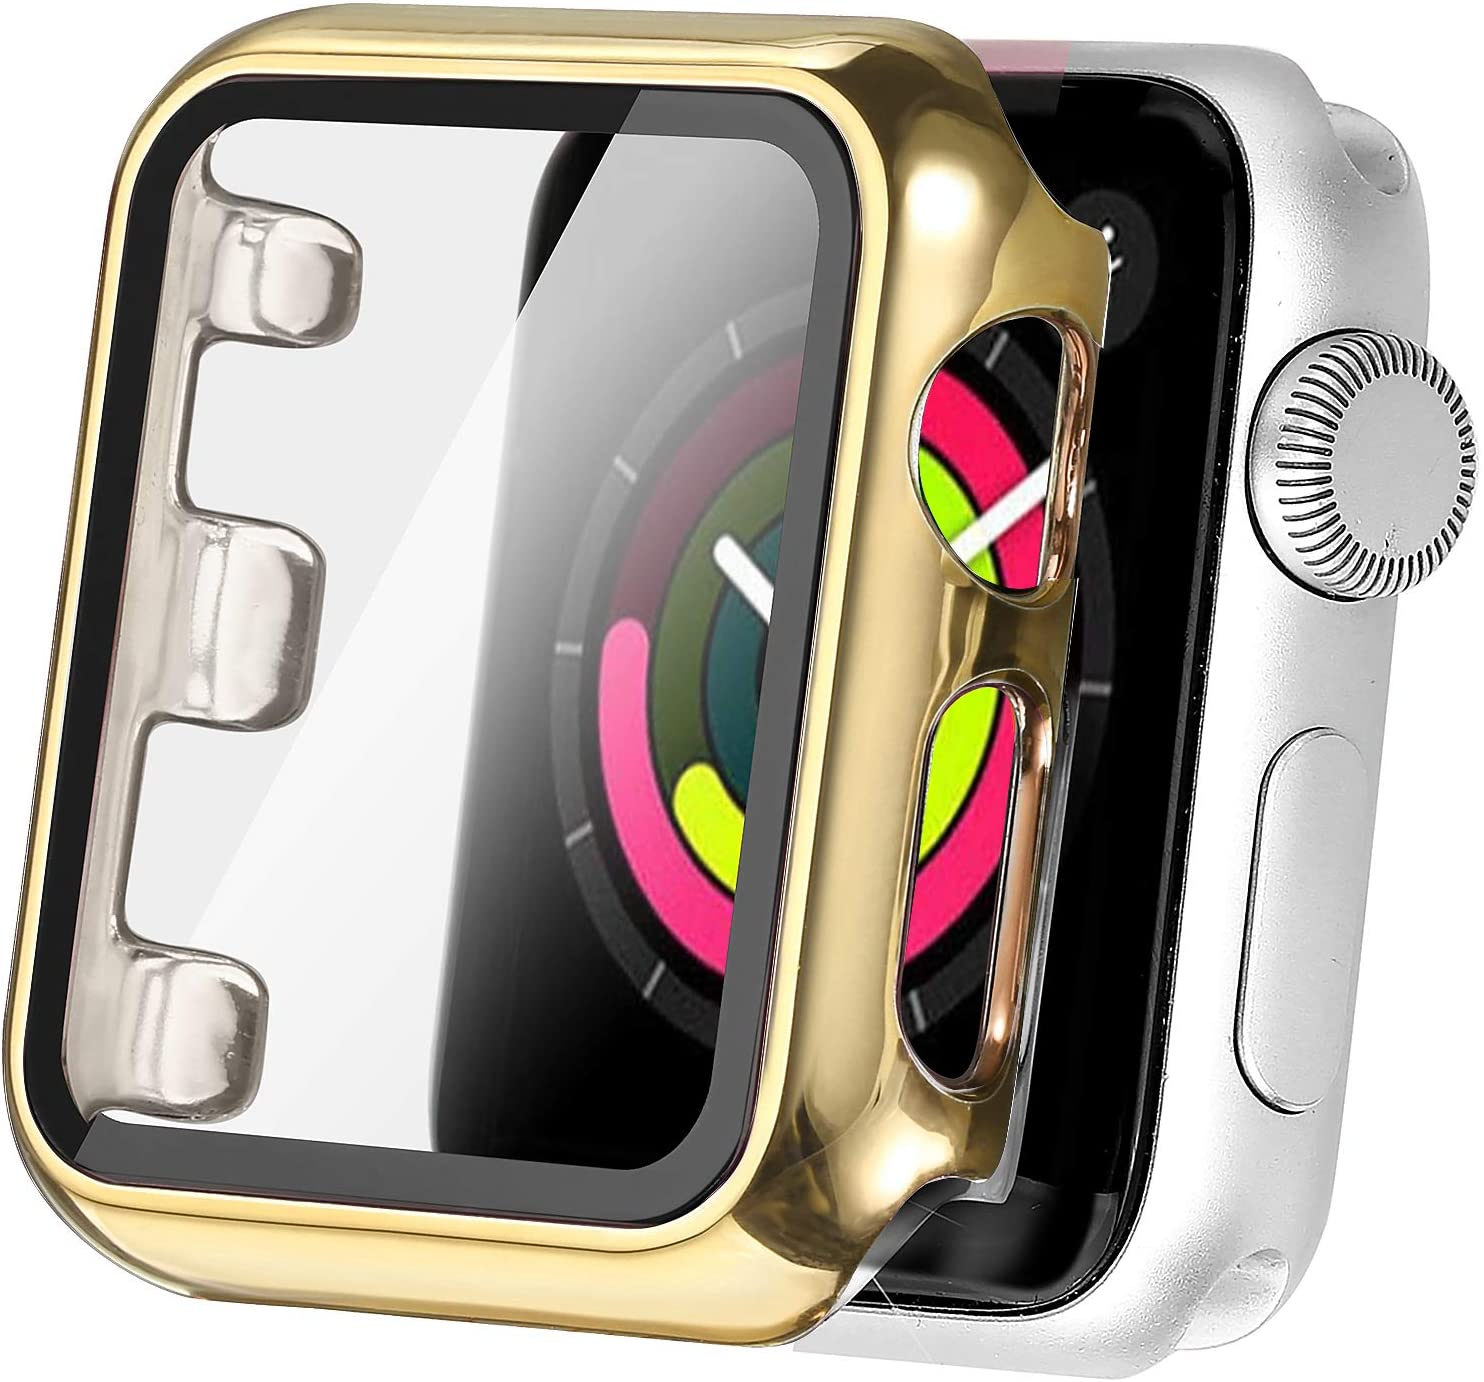 Secbolt 38mm Case Compatible Apple Watch Series 1 Series 2 Series 3 with Built in Tempered Glass Screen Protector- All Around Protective Case for Apple Watch Series 3/2/1 38mm (Gold)